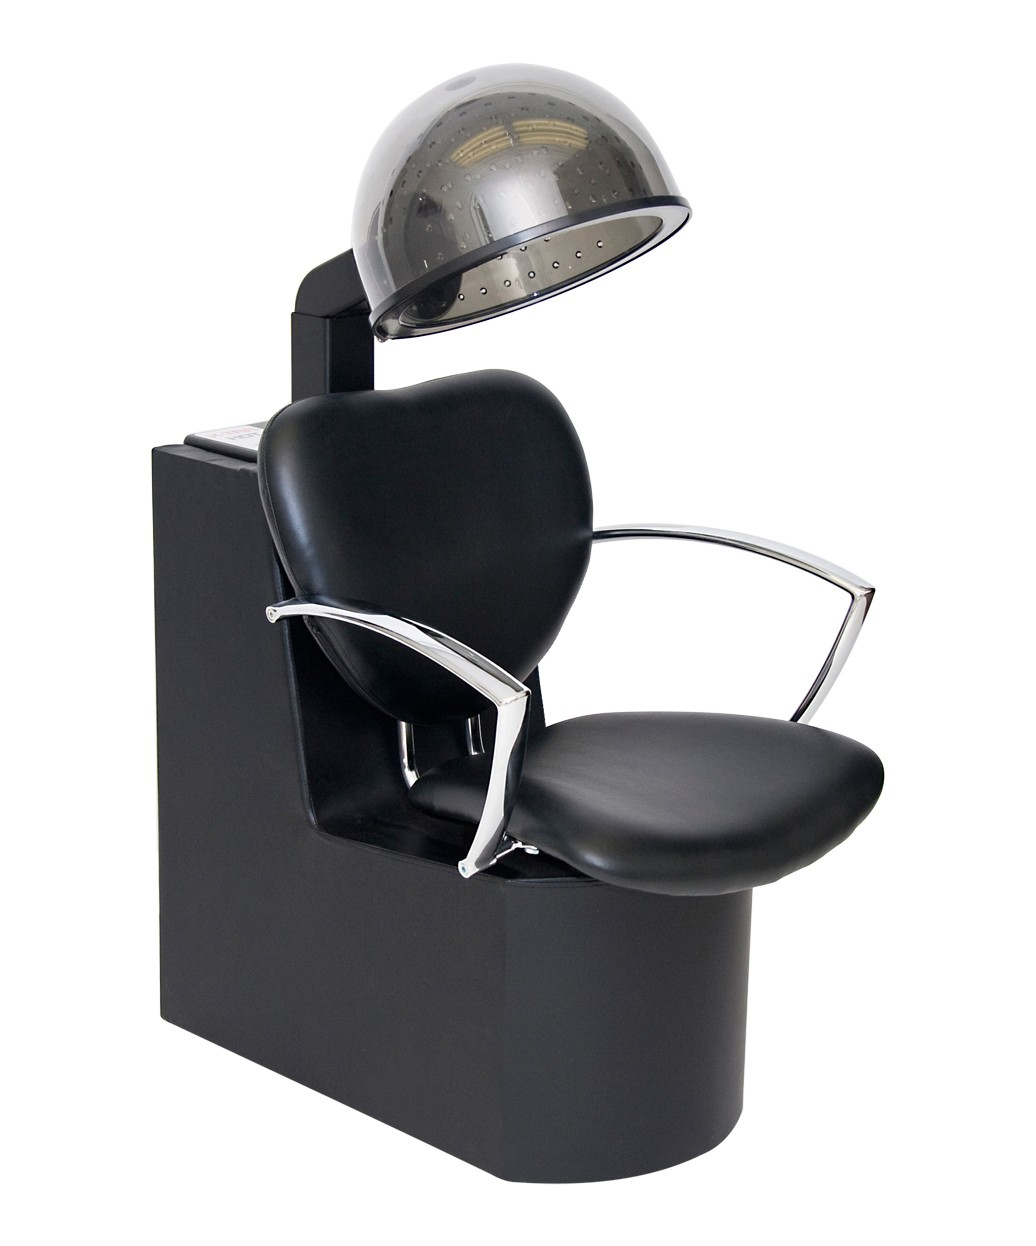 chair hair dryer timed stand test kngf chea and combo